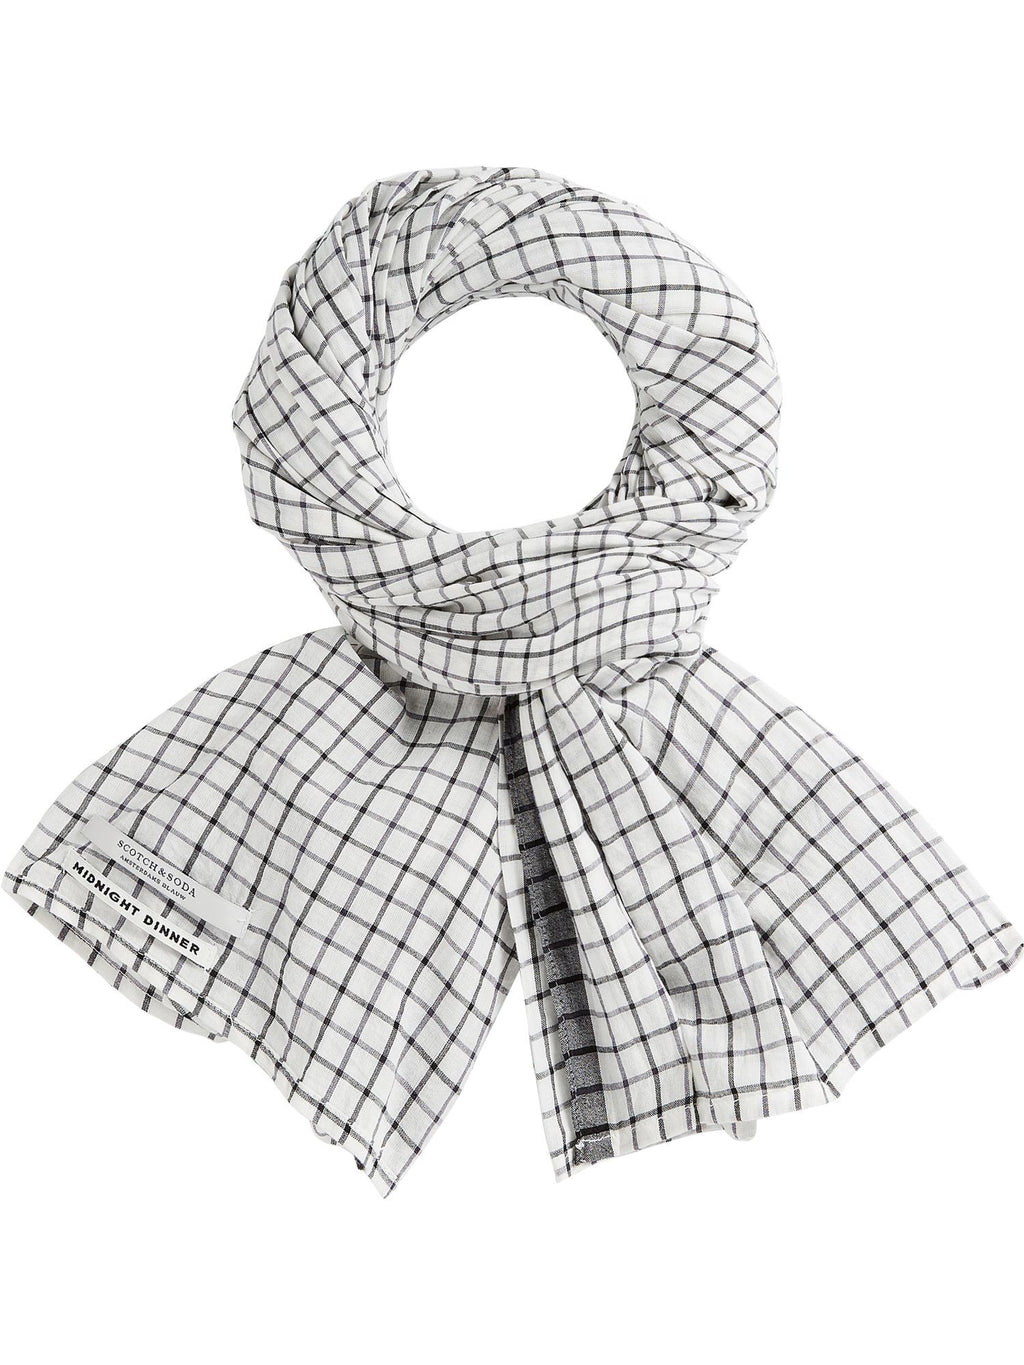 Buy Checked Cotton Scarf from SCOTCH AND SODA at paya boutique